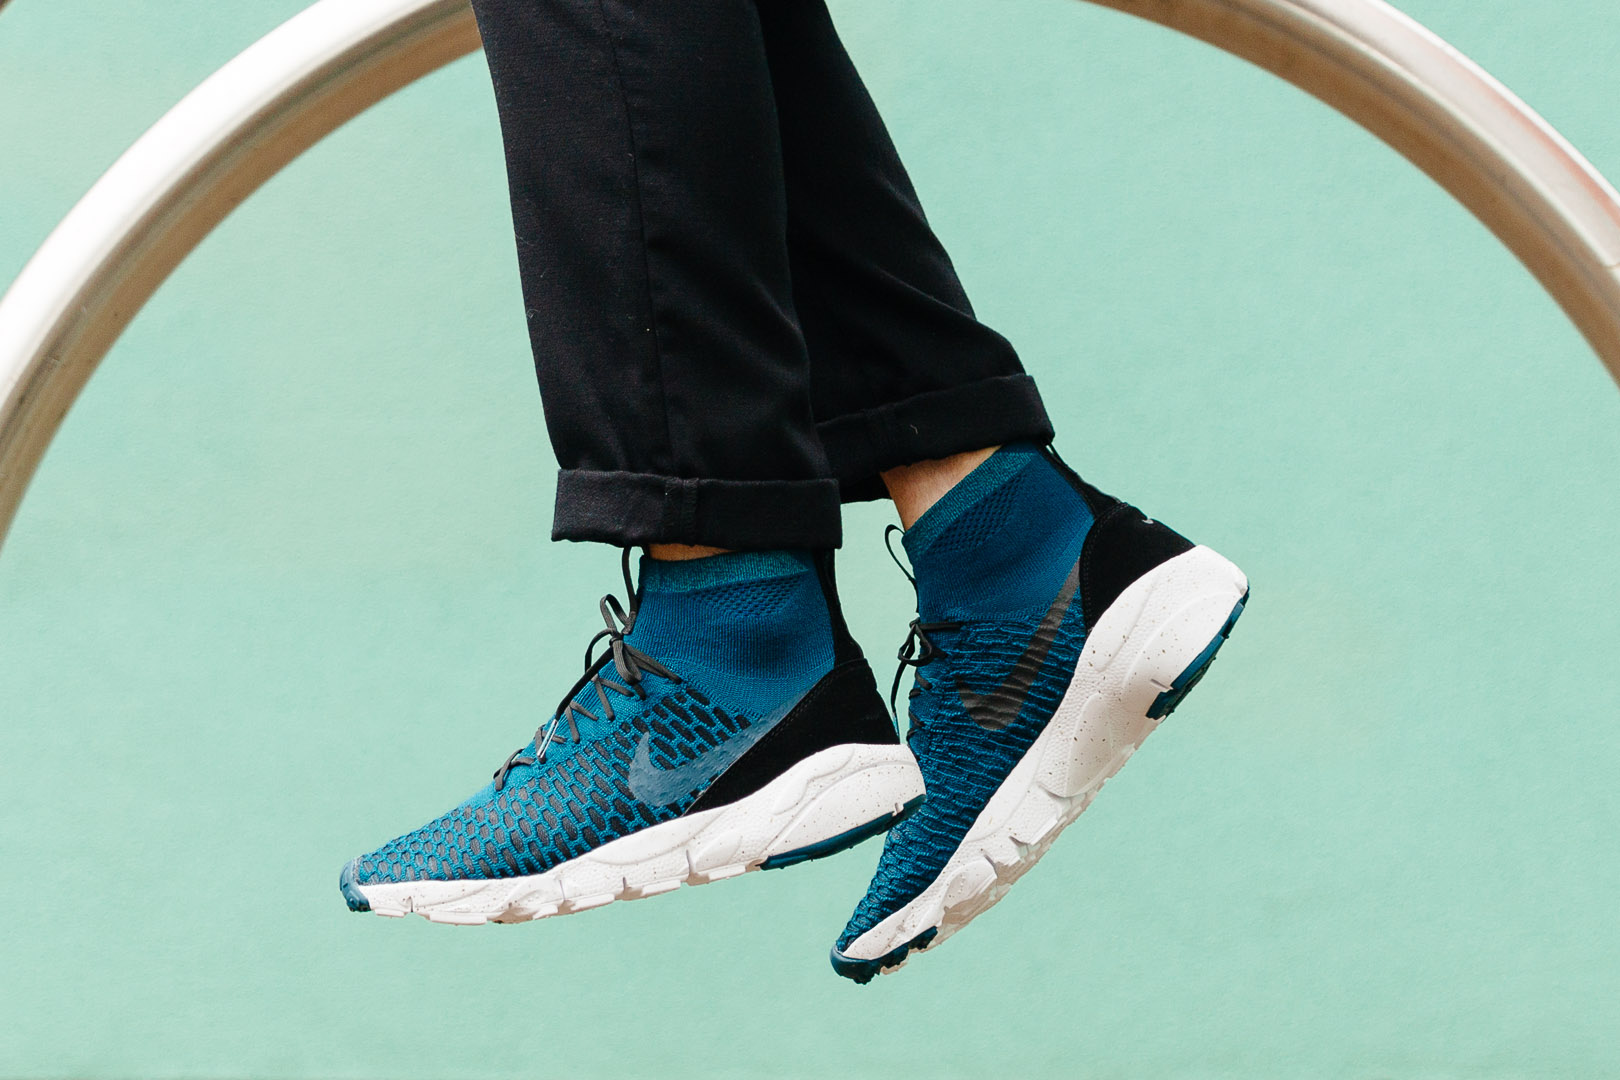 NIKE-AIR-FOOTSCAPE-MAGISTA-FK-FC-MIDNIGHT-TURQUOISE-5614-INS-SoleHeaven-.jpg